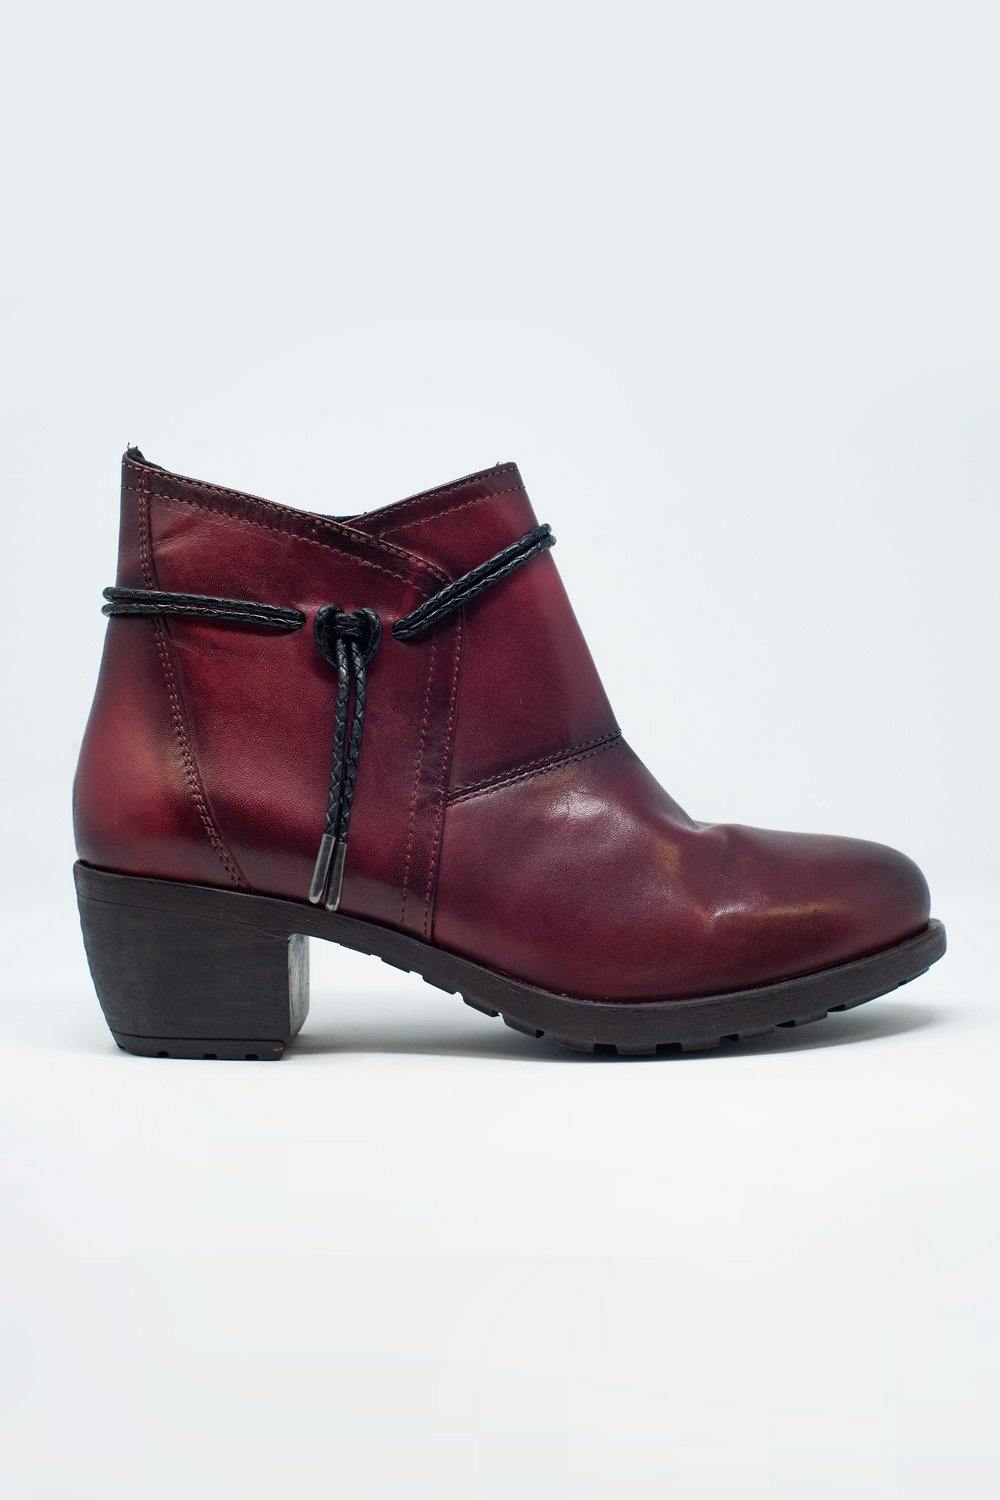 Q2 Maroon blocked mid heeled ankle boots with round toe